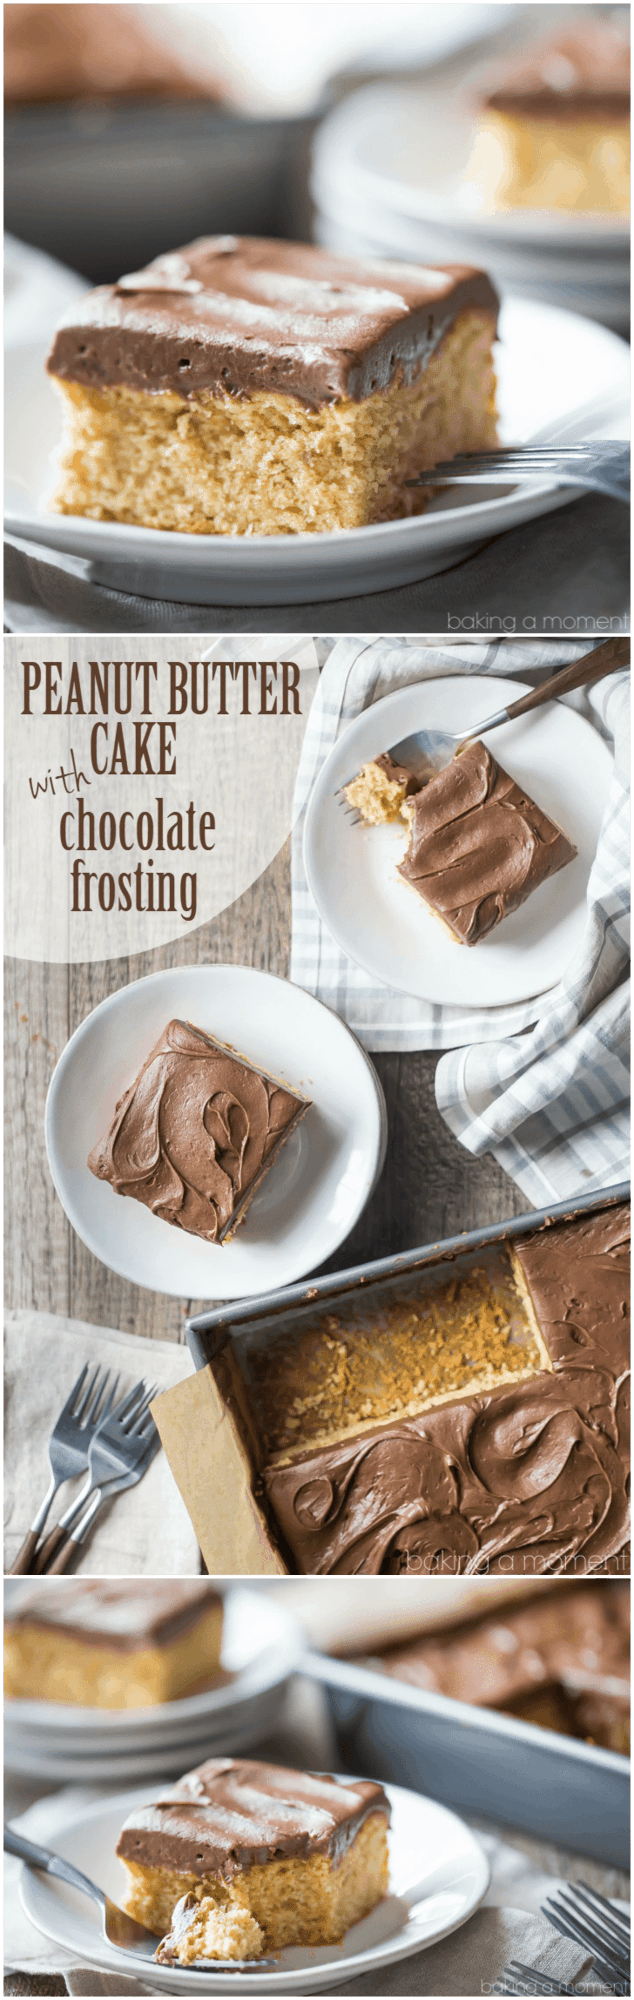 Peanut Butter Cake with Chocolate Frosting - Baking A Moment